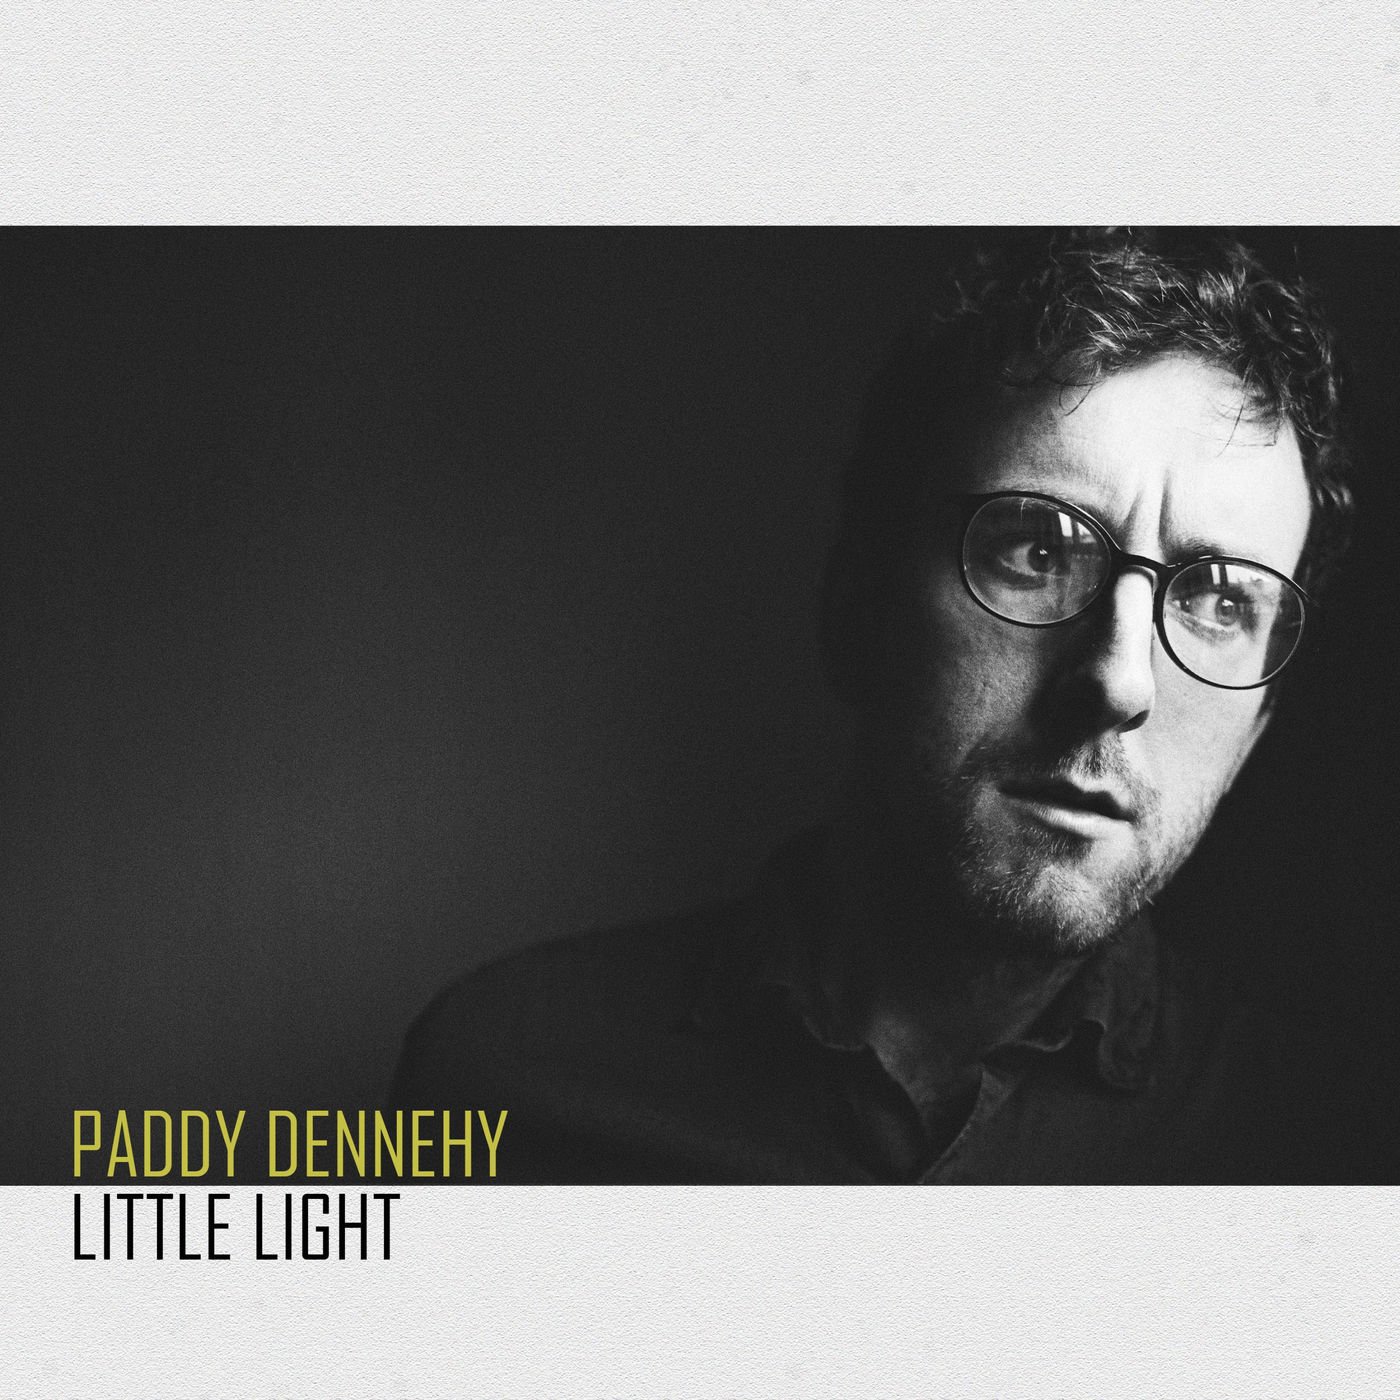 Little Light - Paddy Dennehy